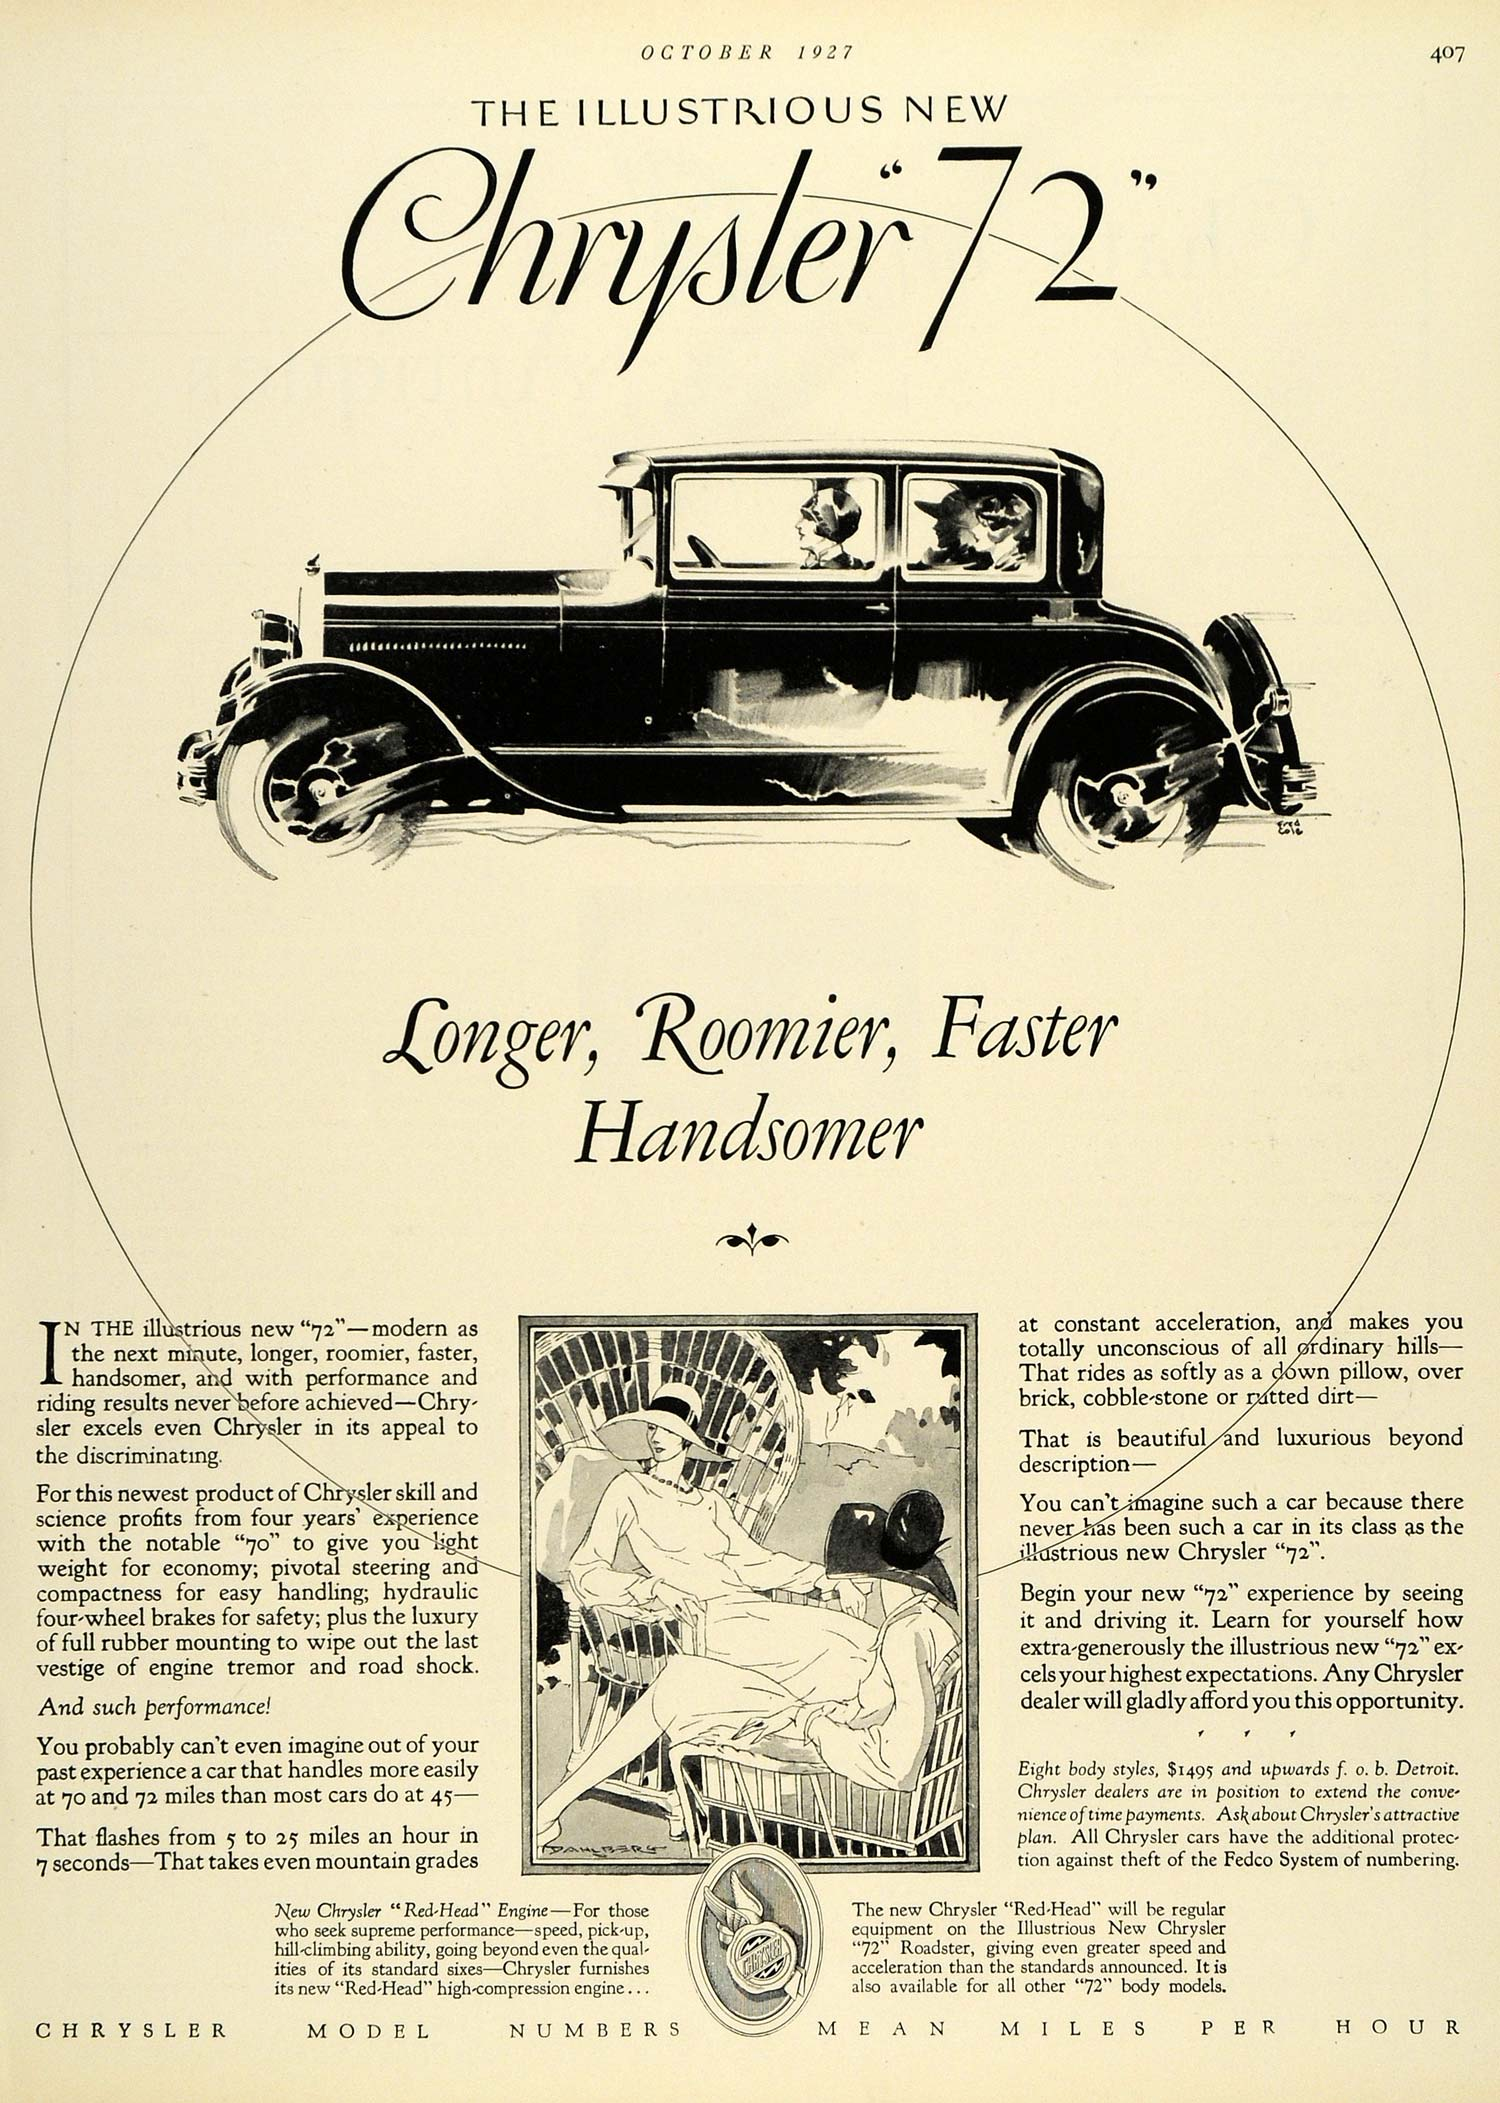 1927 Ad Chrysler 72 Automobile Car Vehicle Dahlberg Motor Detroit Michigan  HB2